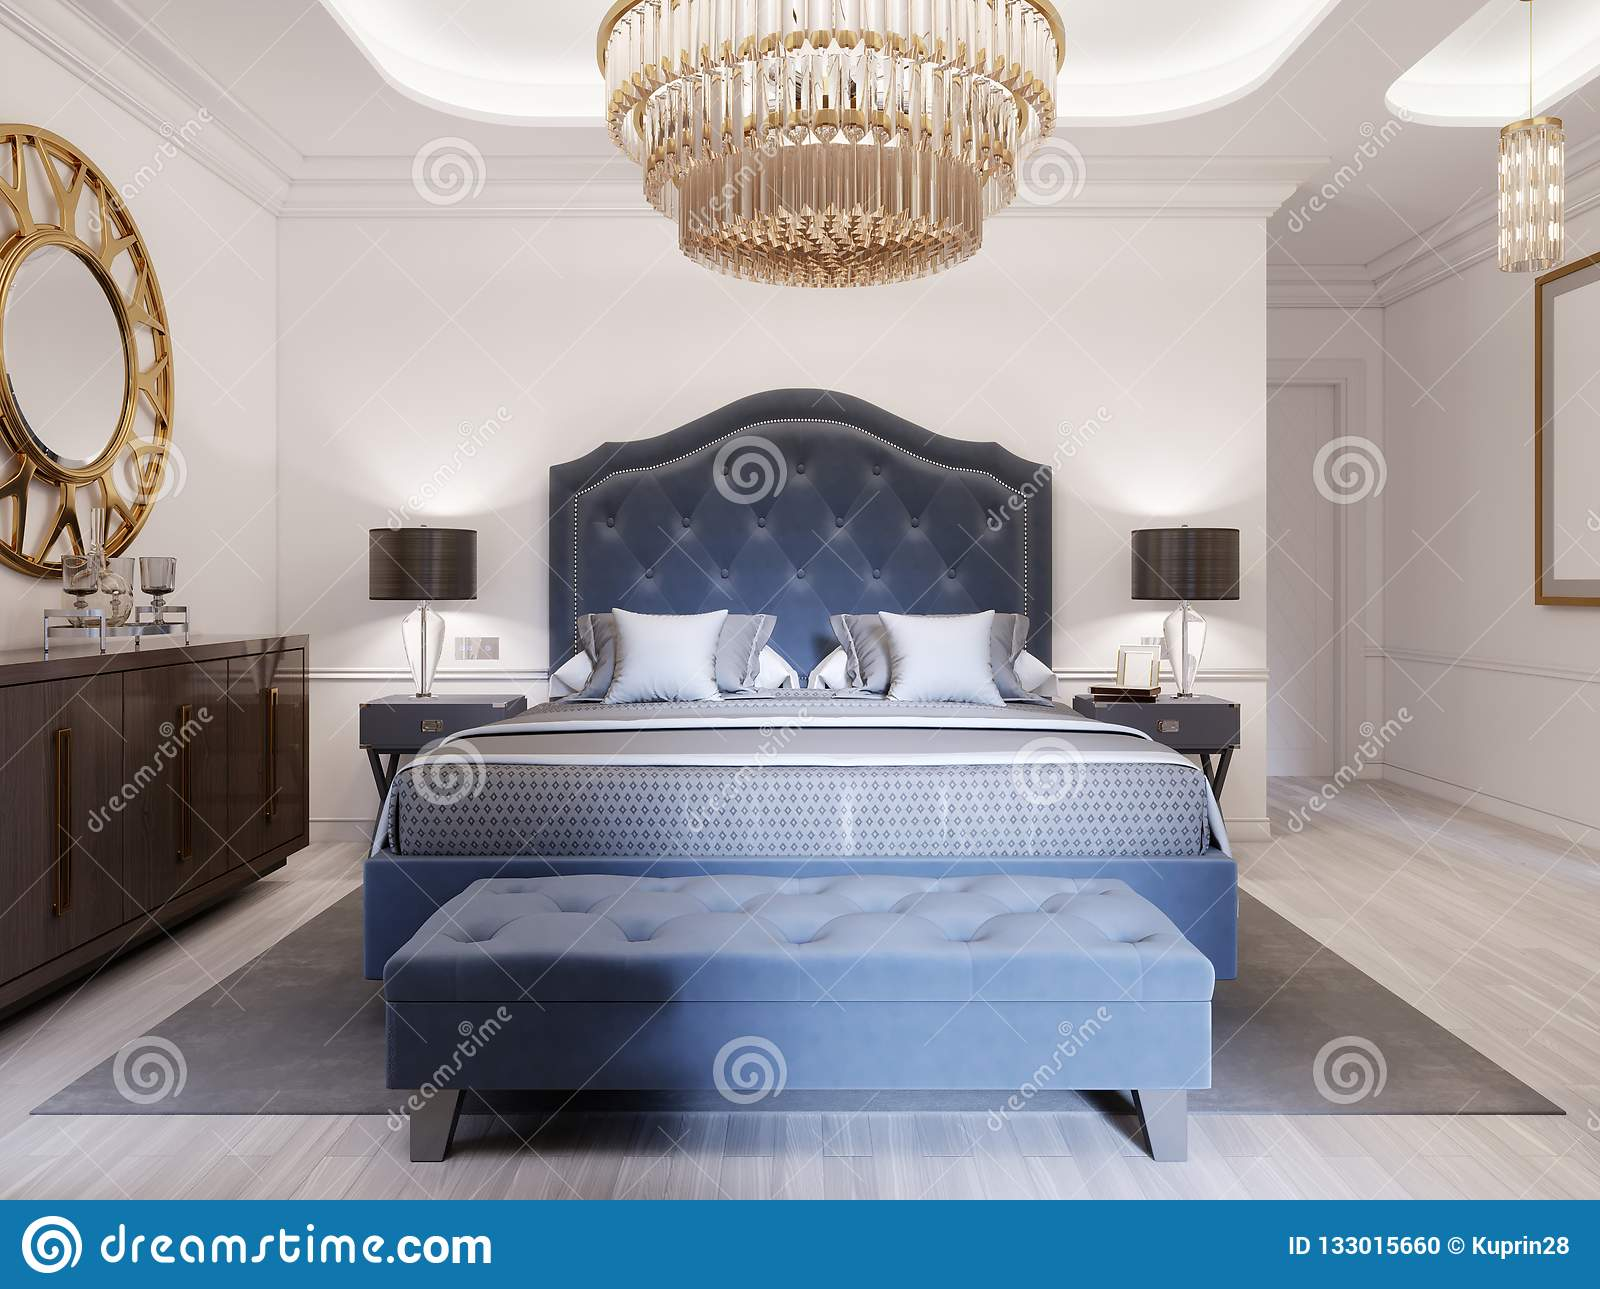 Picture of: Modern Bed In Classic Blue Style With Bedside Table And Lamp Large Glass Chandelier Over A Dresser With A Decor And A Golden Stock Illustration Illustration Of Contemporary Decoration 133015660